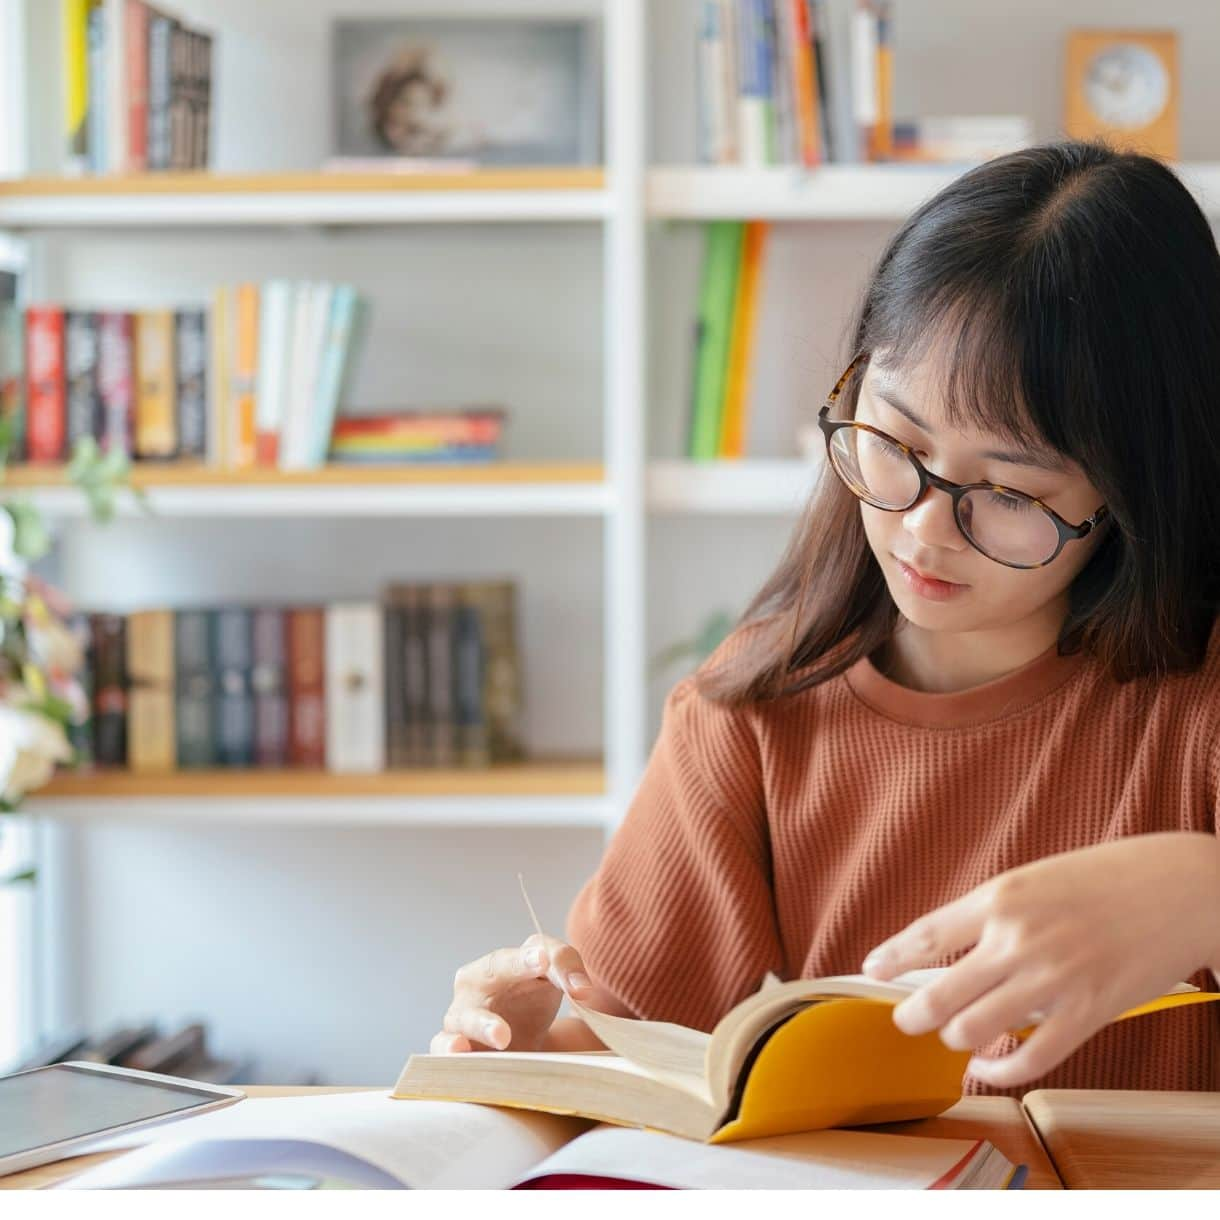 Some tips for Reading